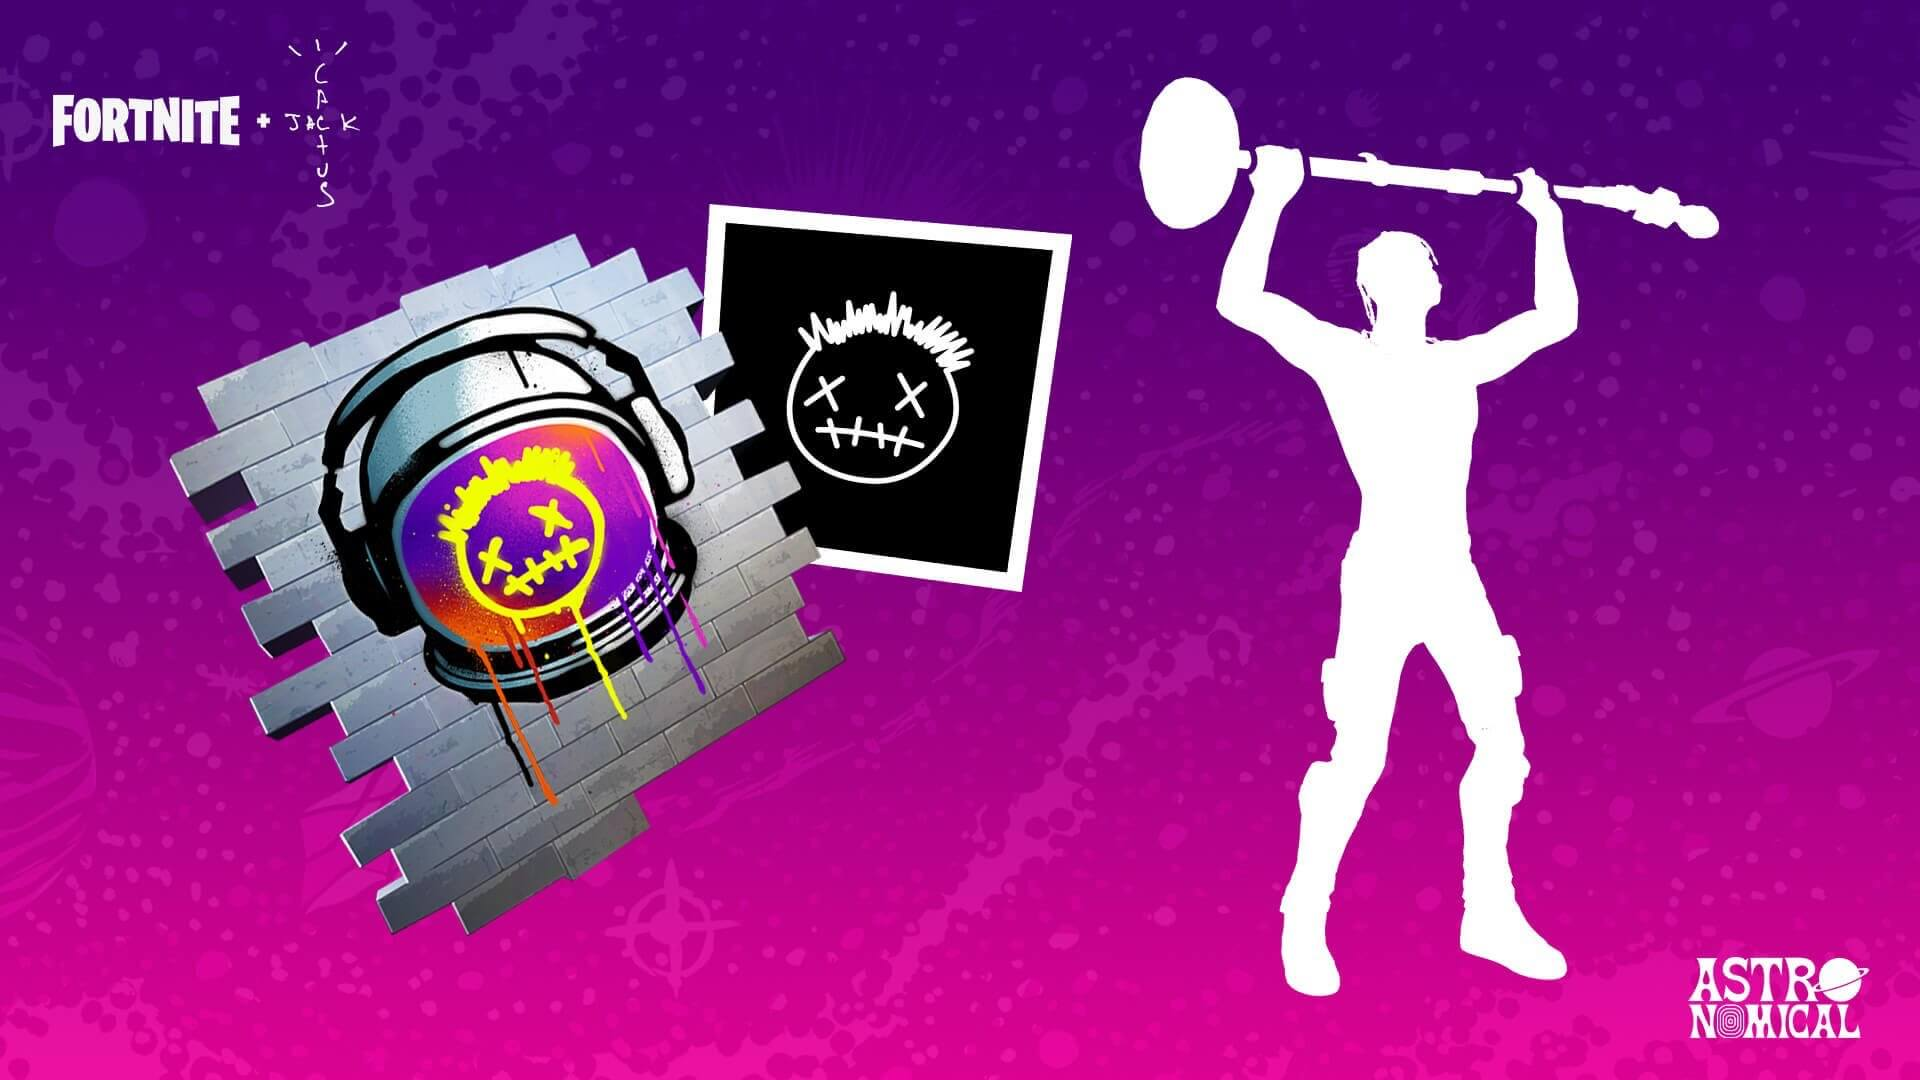 Fortnite - Event Travis Scott - Skin, Planeur, emote et sprays